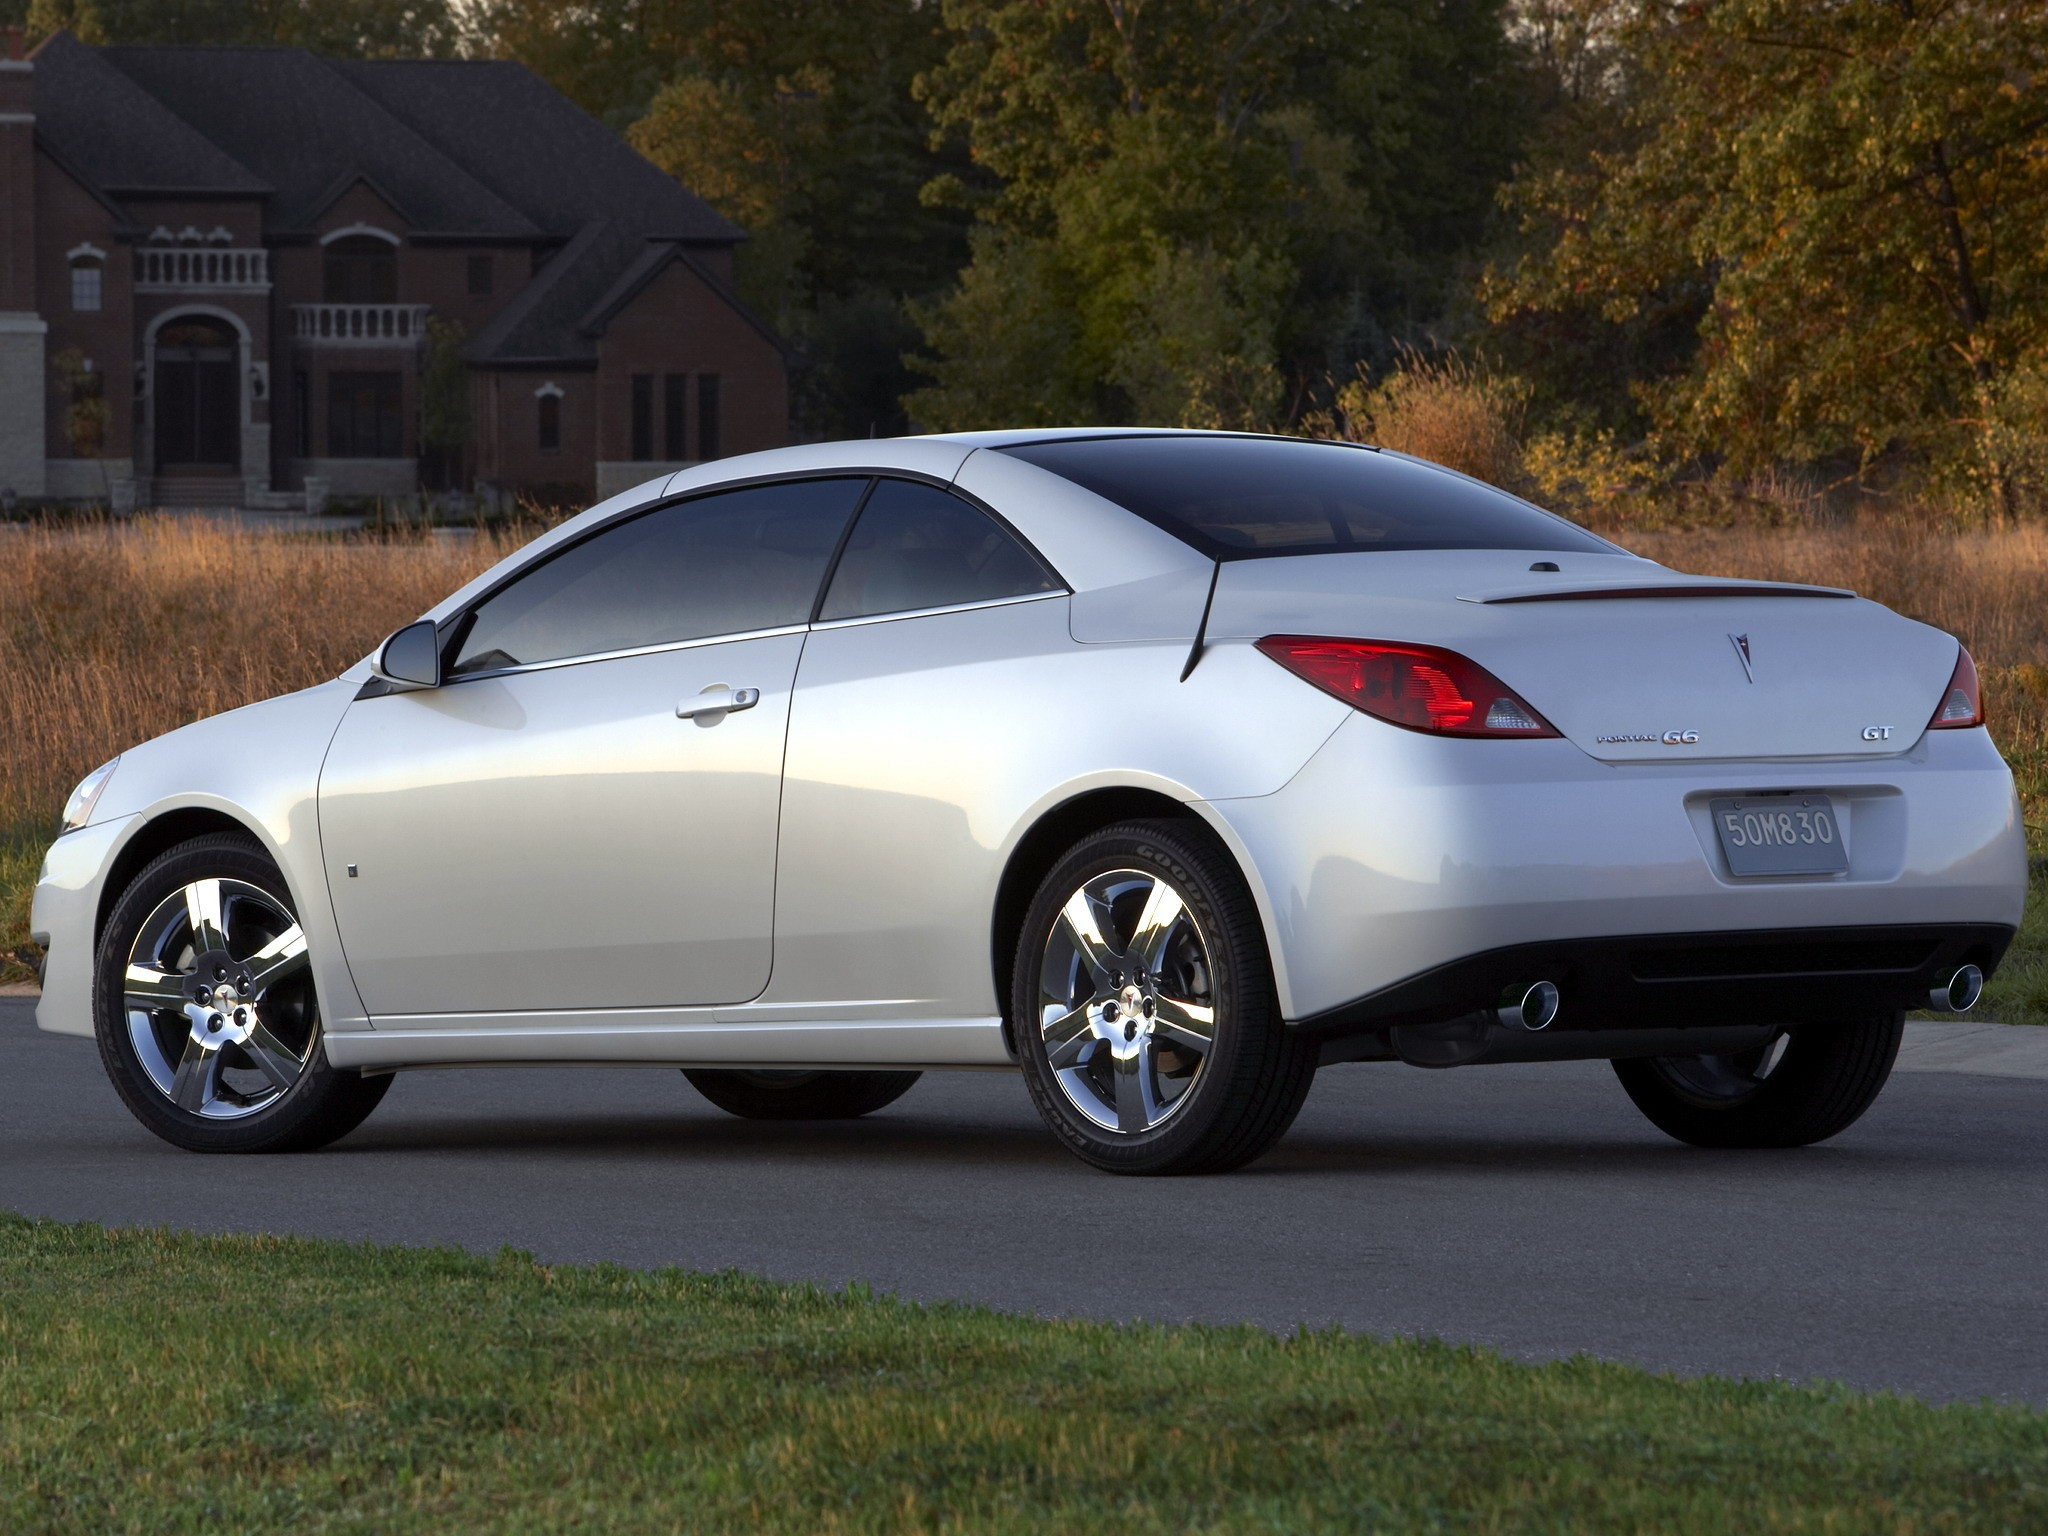 Pontiac g6 photo - 6